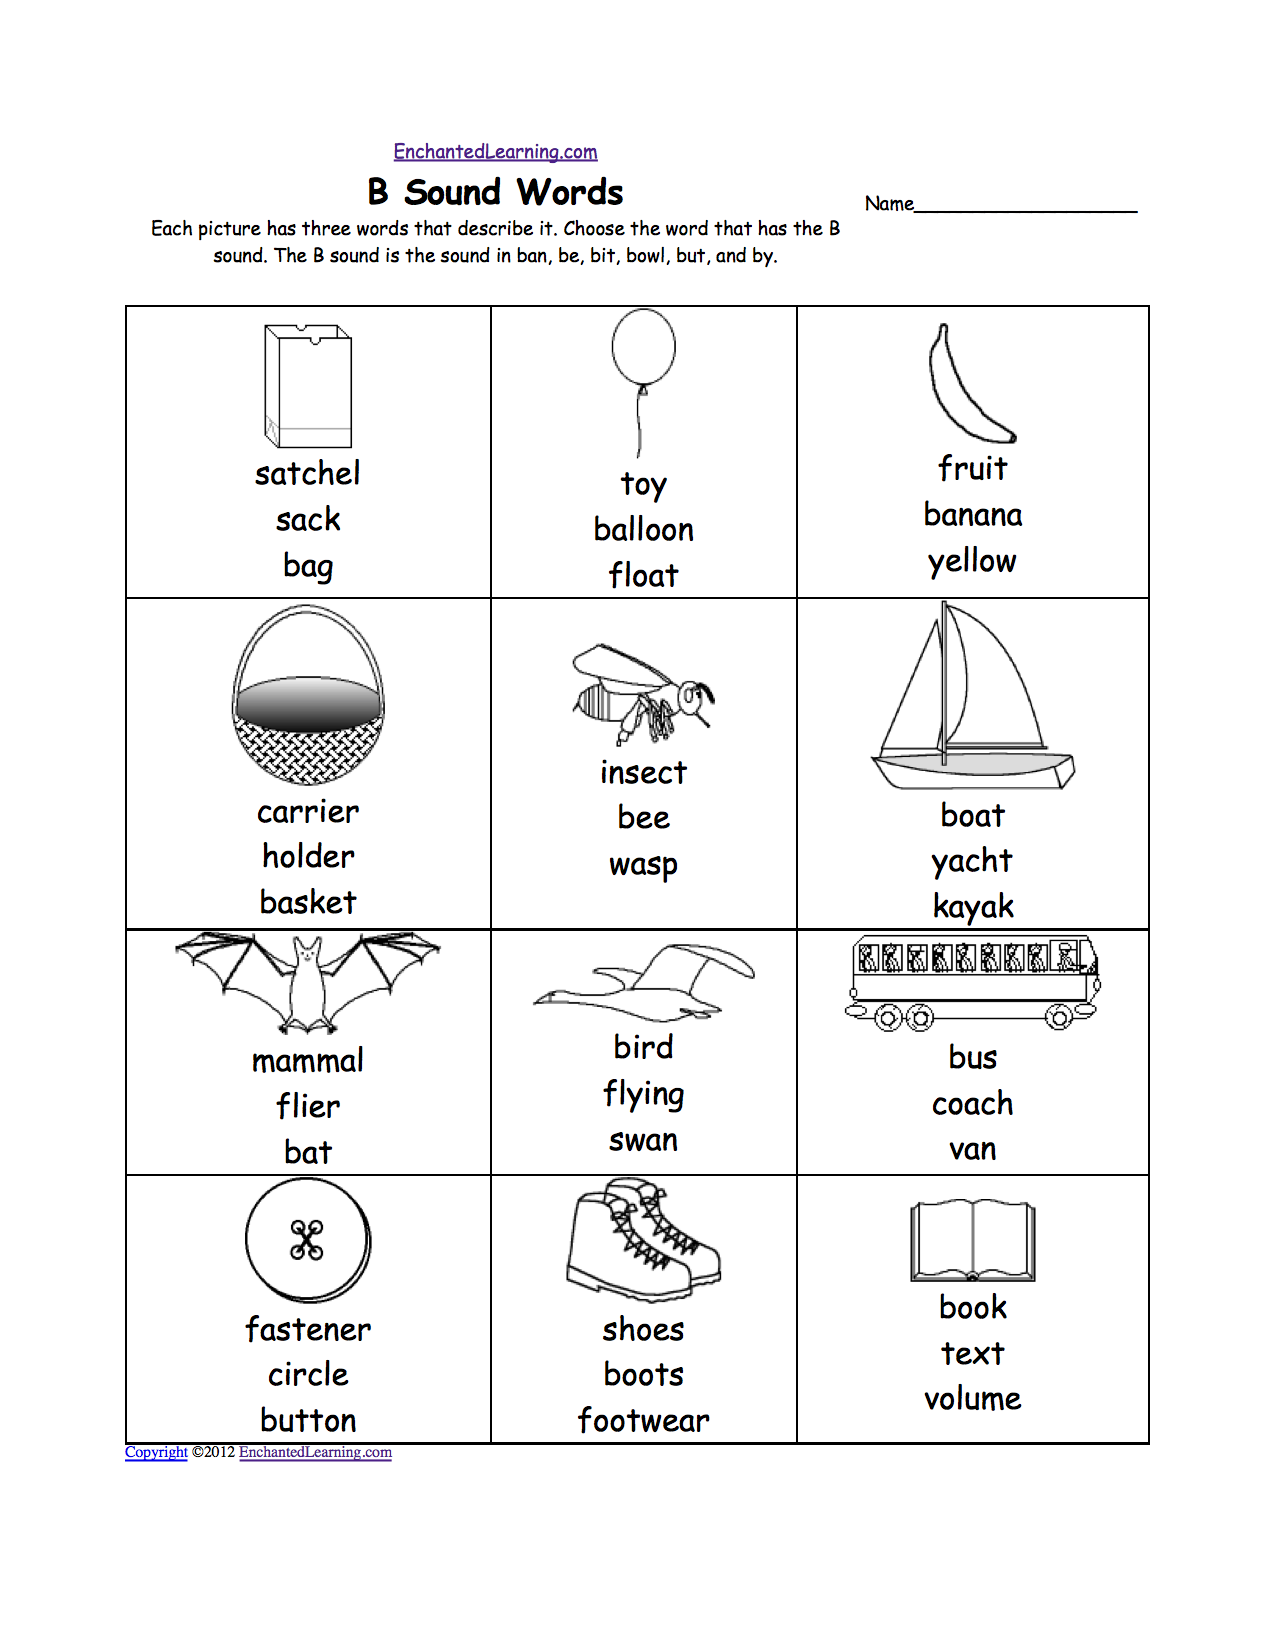 Weirdmailus  Stunning Phonics Worksheets Multiple Choice Worksheets To Print  With Fair Quotbquot Sound Phonics Worksheet Multiple Choice Each Picture Has Three Words That Describe It Choose The Word That Has A Quotbquot Sound The Quotbquot Sound Is The Sound  With Cool Reading Free Worksheets Also French Regular Er Verbs Worksheet In Addition Simple Rotation Worksheet And Spelling Activities Worksheets As Well As Worksheets For Grade  English Additionally Adverb Phrases Worksheet With Answers From Enchantedlearningcom With Weirdmailus  Fair Phonics Worksheets Multiple Choice Worksheets To Print  With Cool Quotbquot Sound Phonics Worksheet Multiple Choice Each Picture Has Three Words That Describe It Choose The Word That Has A Quotbquot Sound The Quotbquot Sound Is The Sound  And Stunning Reading Free Worksheets Also French Regular Er Verbs Worksheet In Addition Simple Rotation Worksheet From Enchantedlearningcom